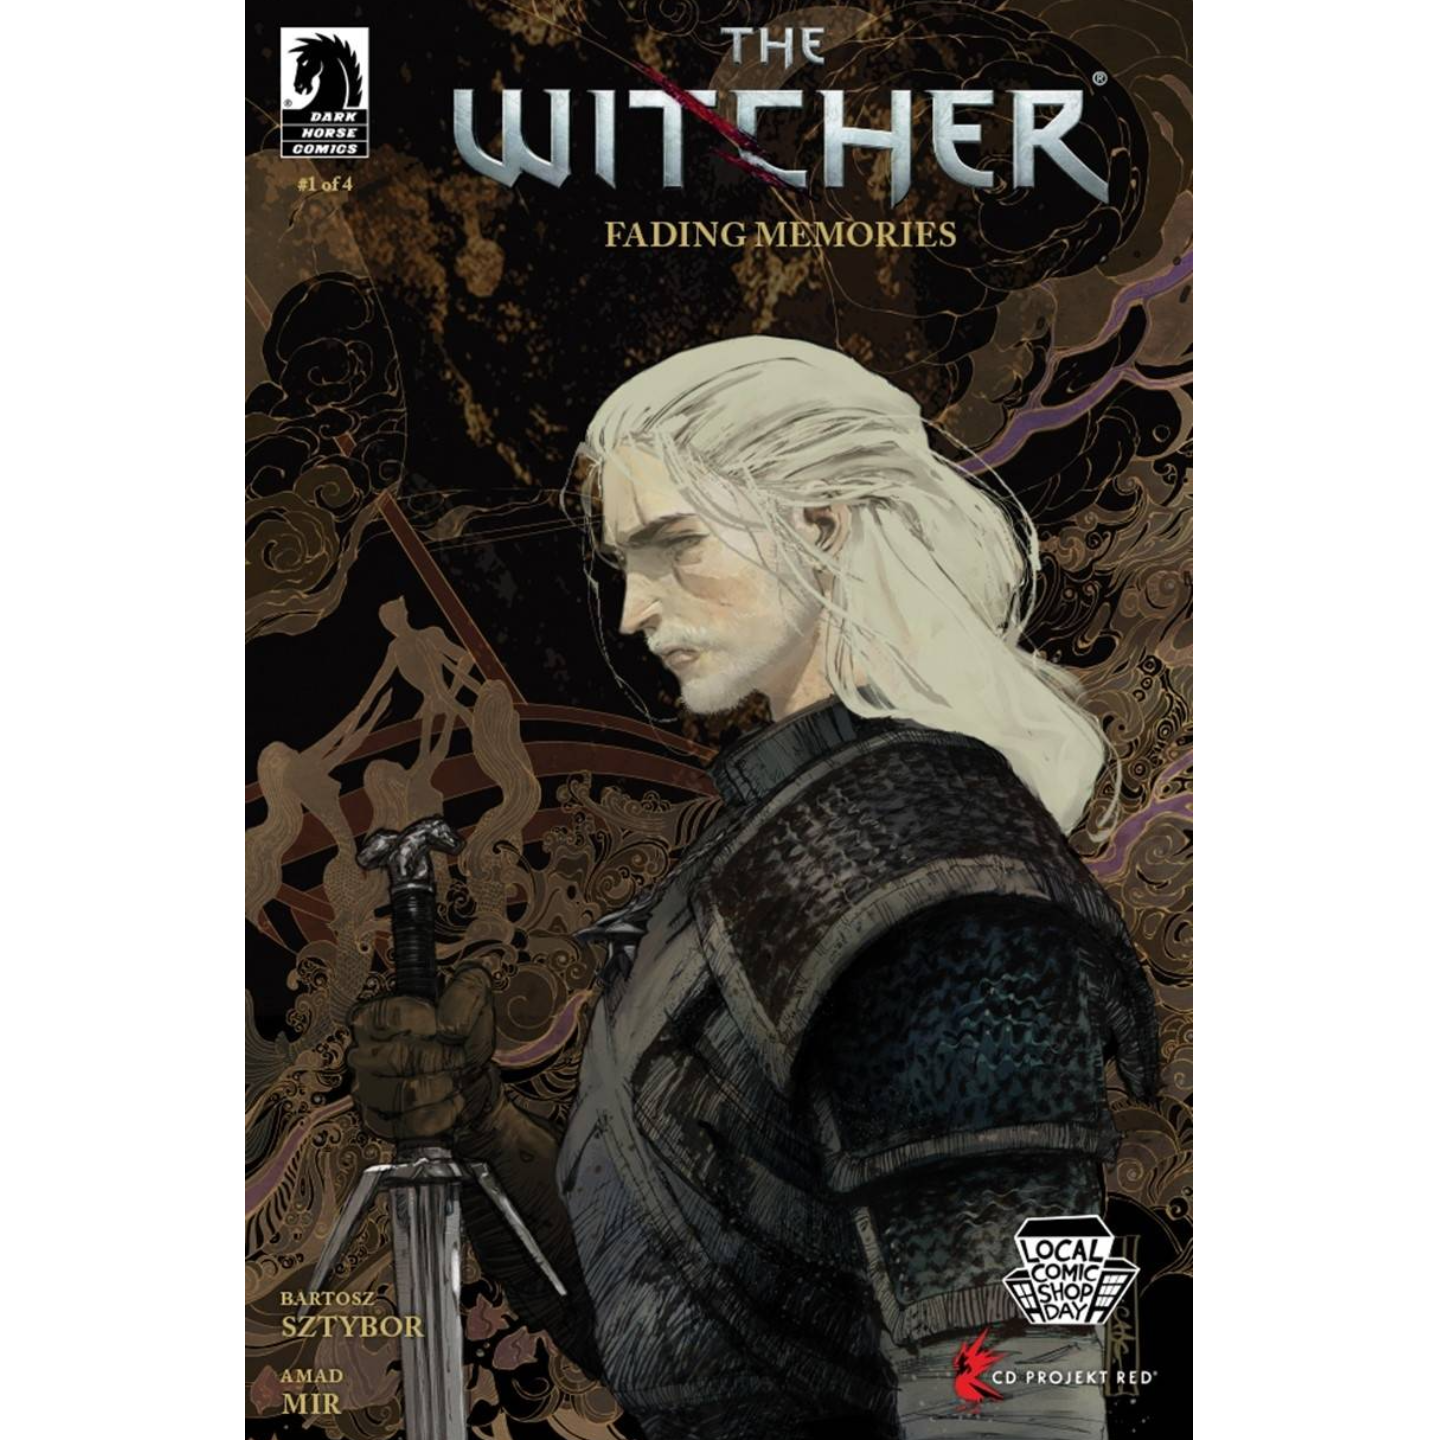 WITCHER FADING MEMORIES #1 (OF 4) CVR A (RES)